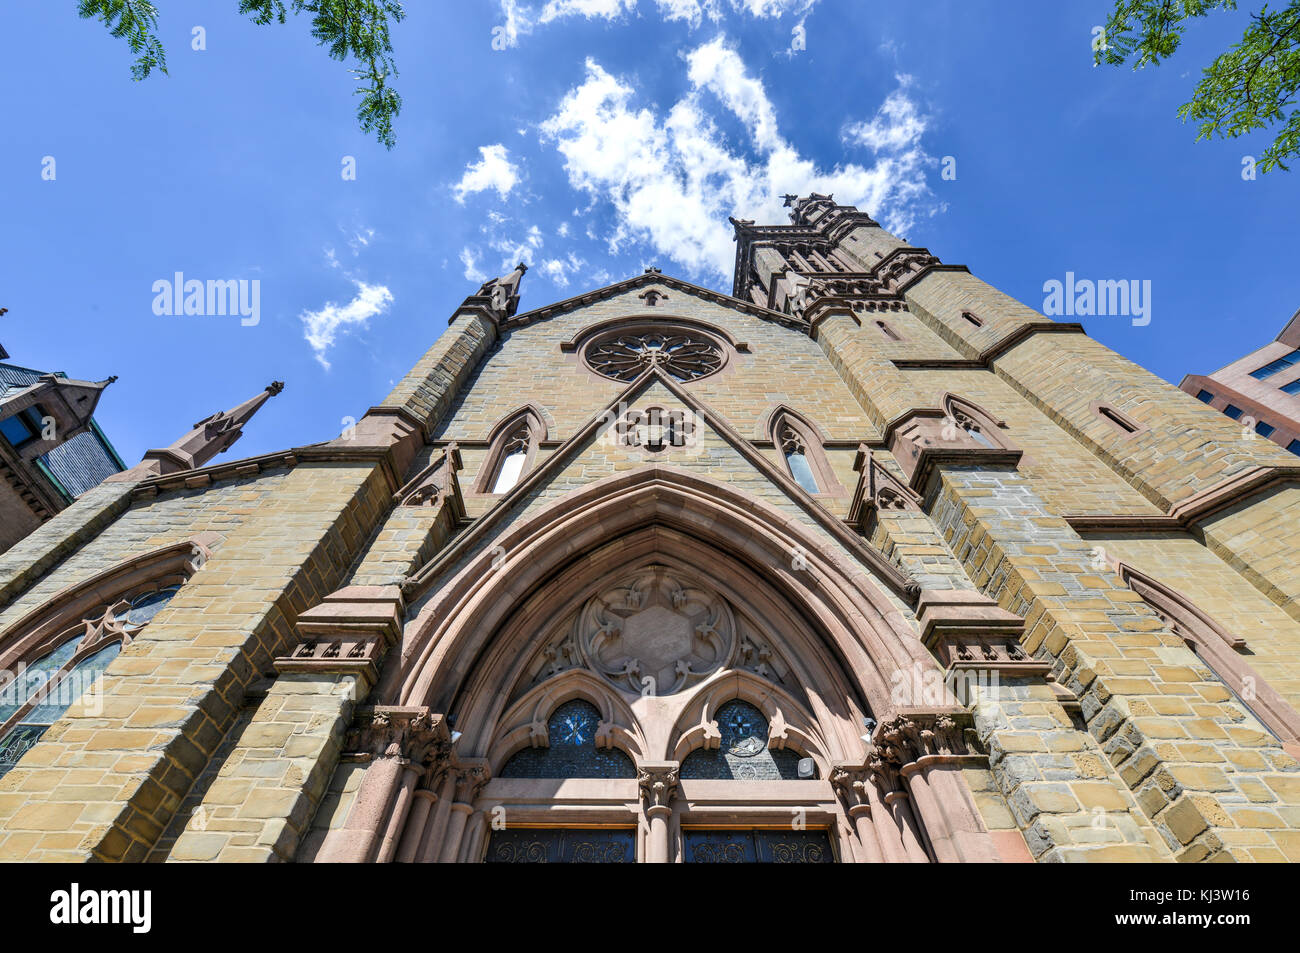 St. Peter's Episcopal Church, also known as St. Peter's Church, which is located in downtown Albany, New - Stock Image